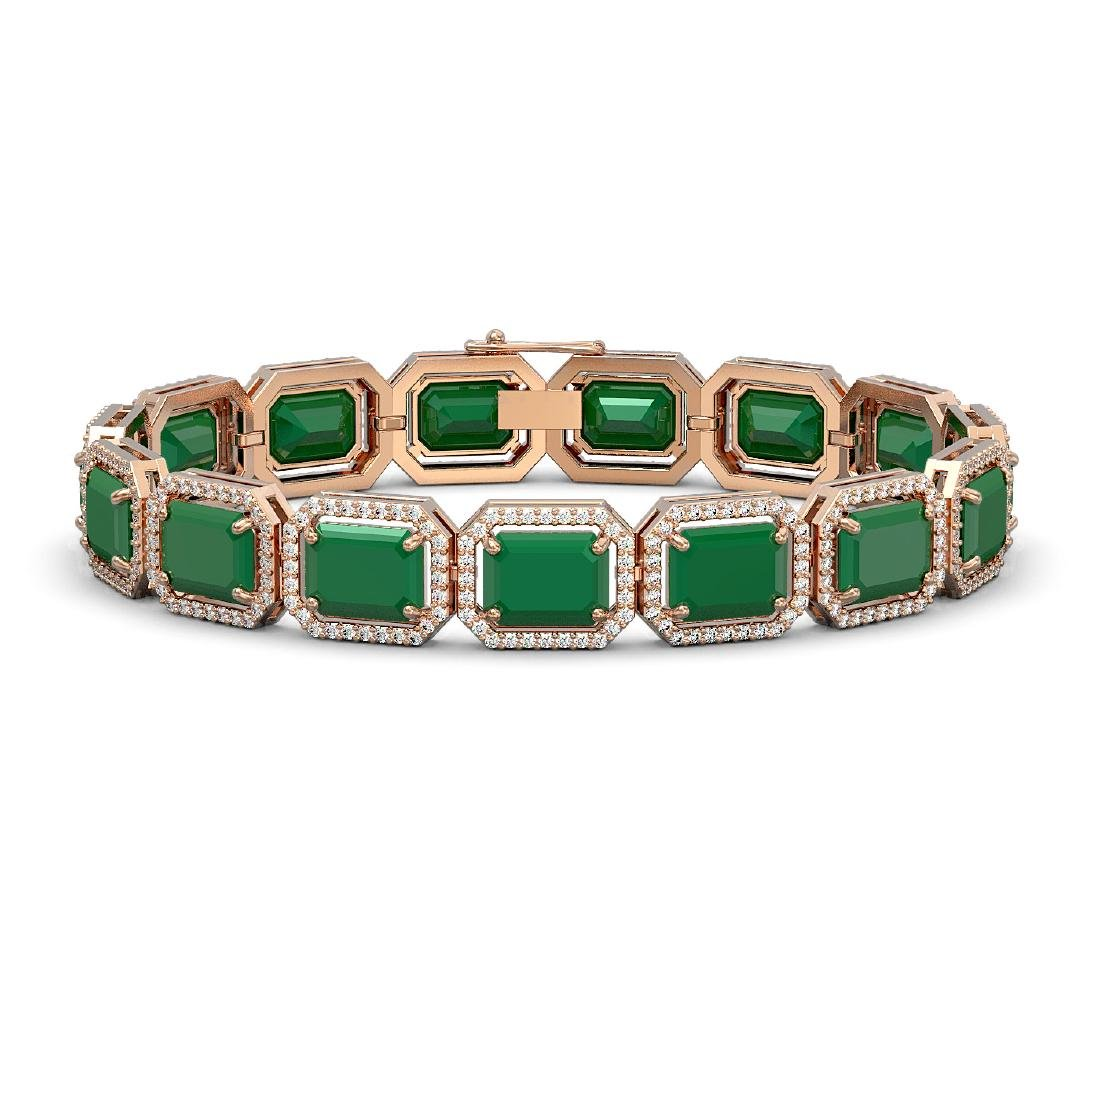 38.61 CTW Emerald & Diamond Halo Bracelet 10K Rose Gold